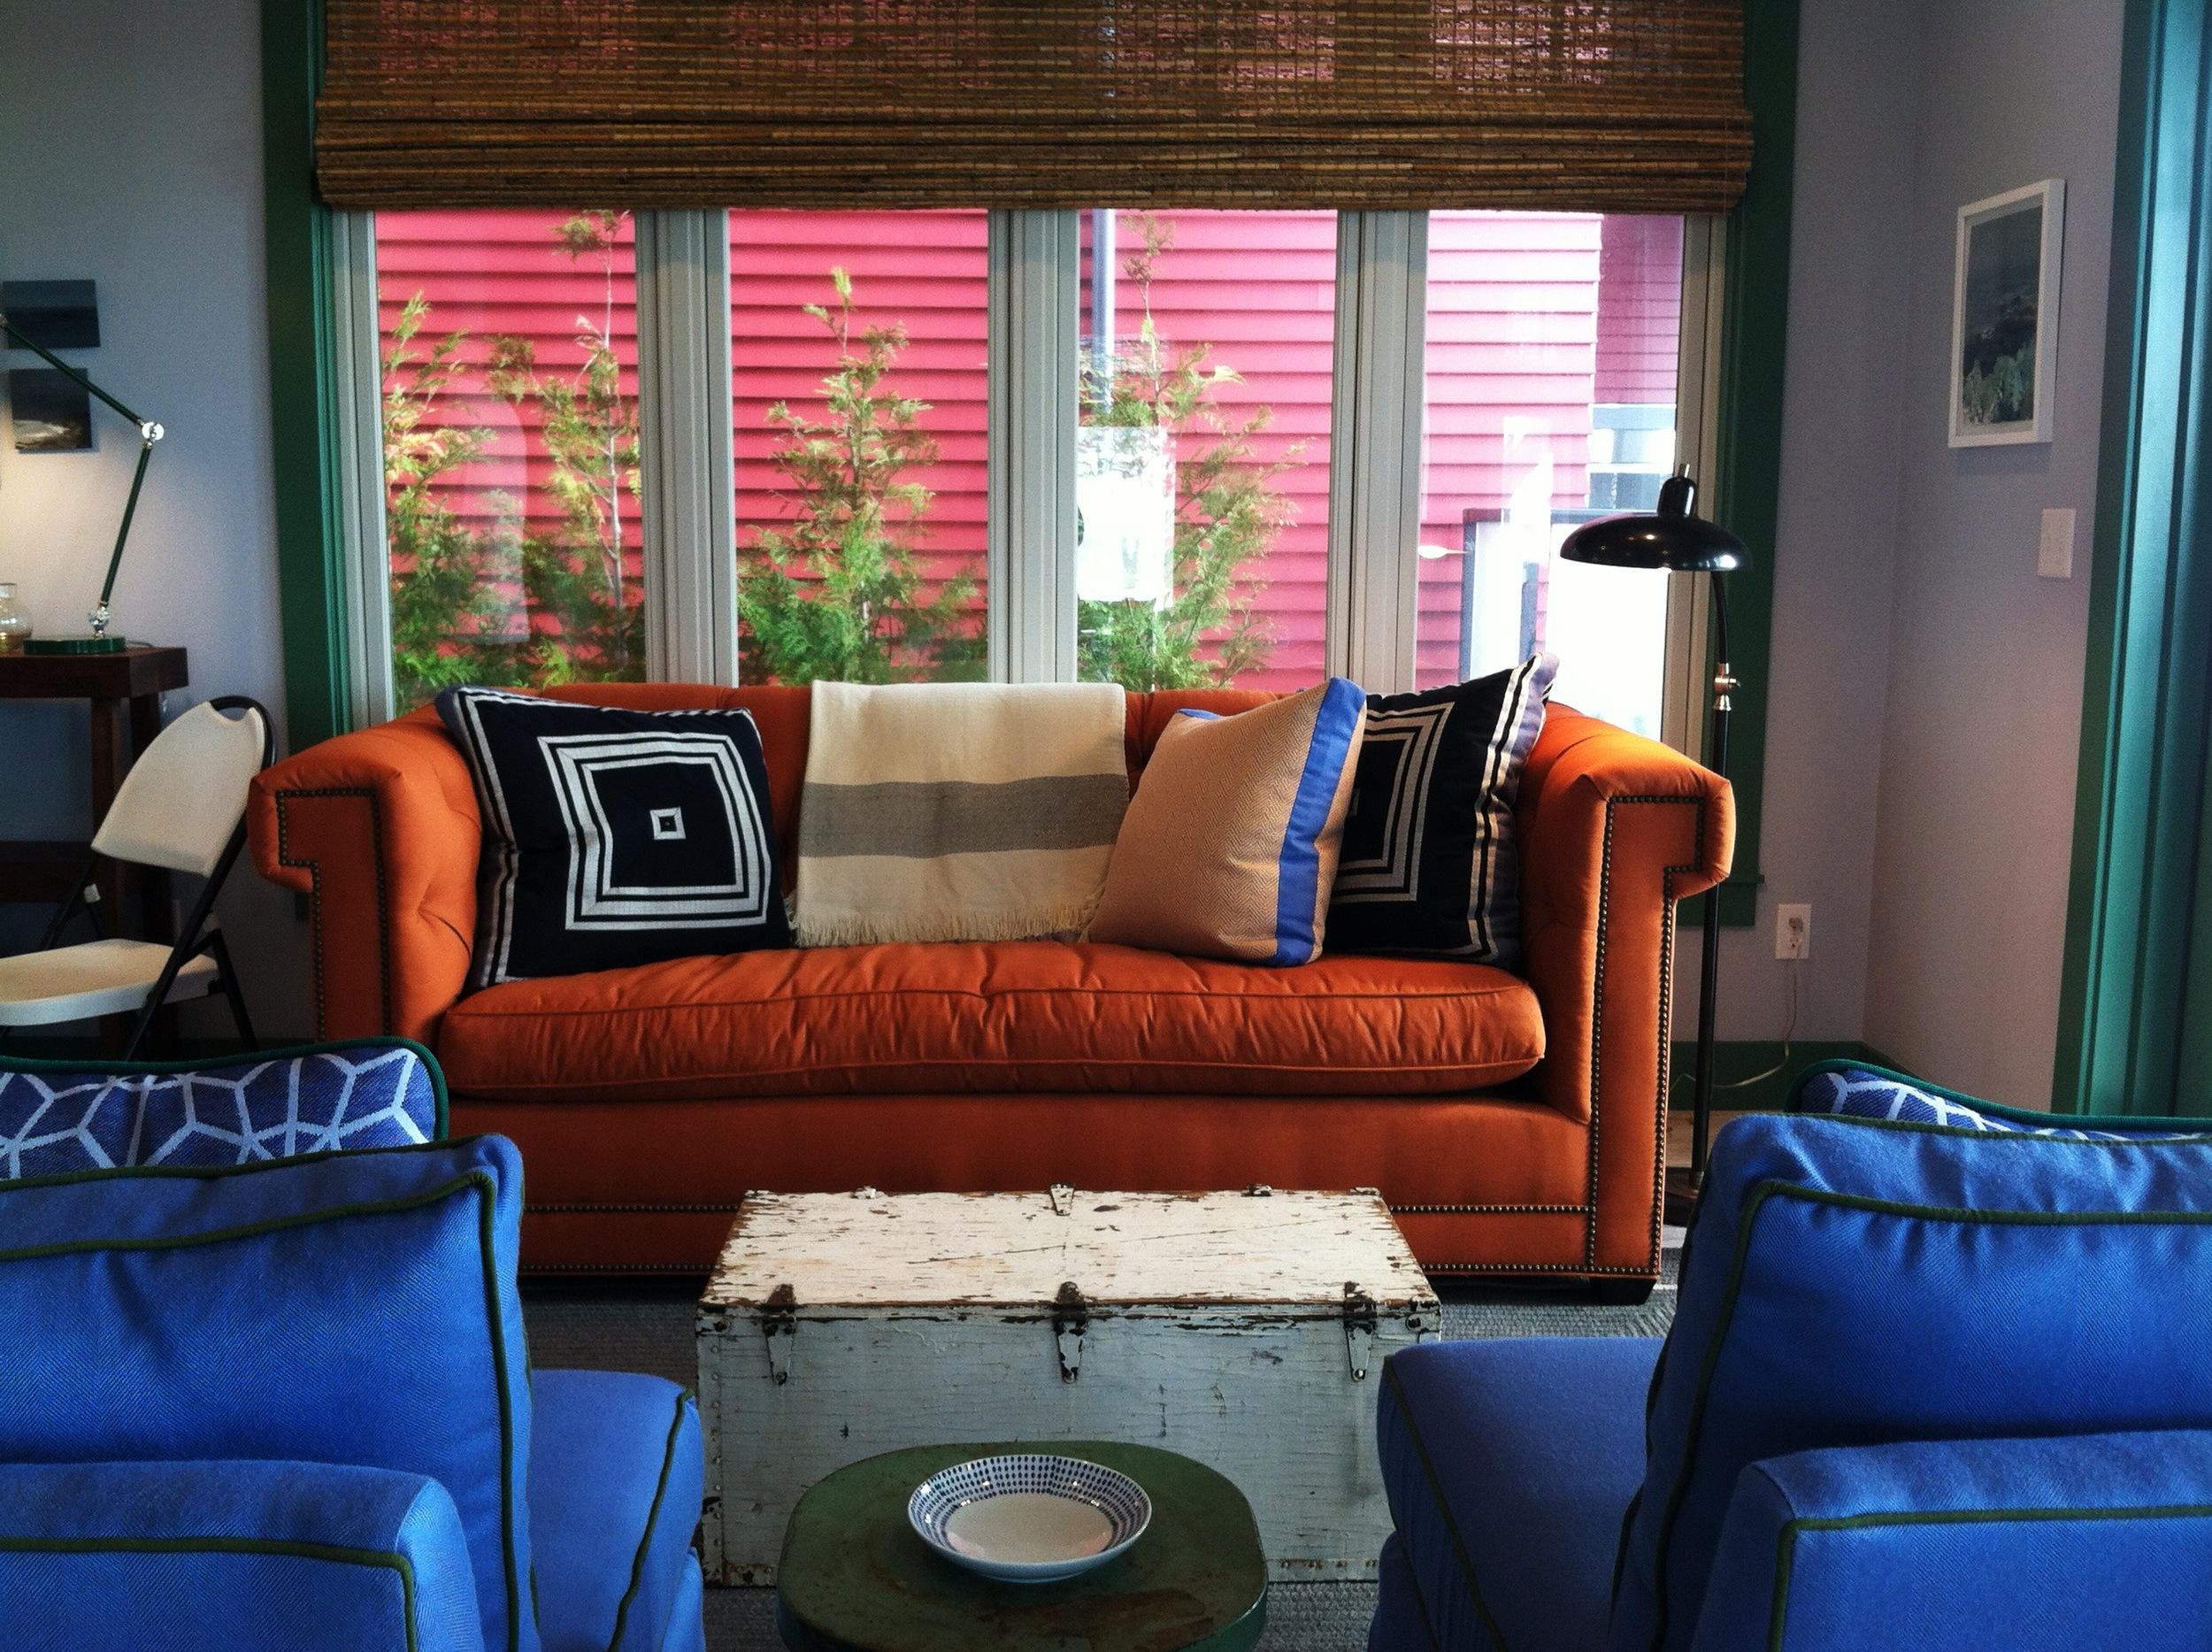 orange interior designs, bold colors, bright interior decor